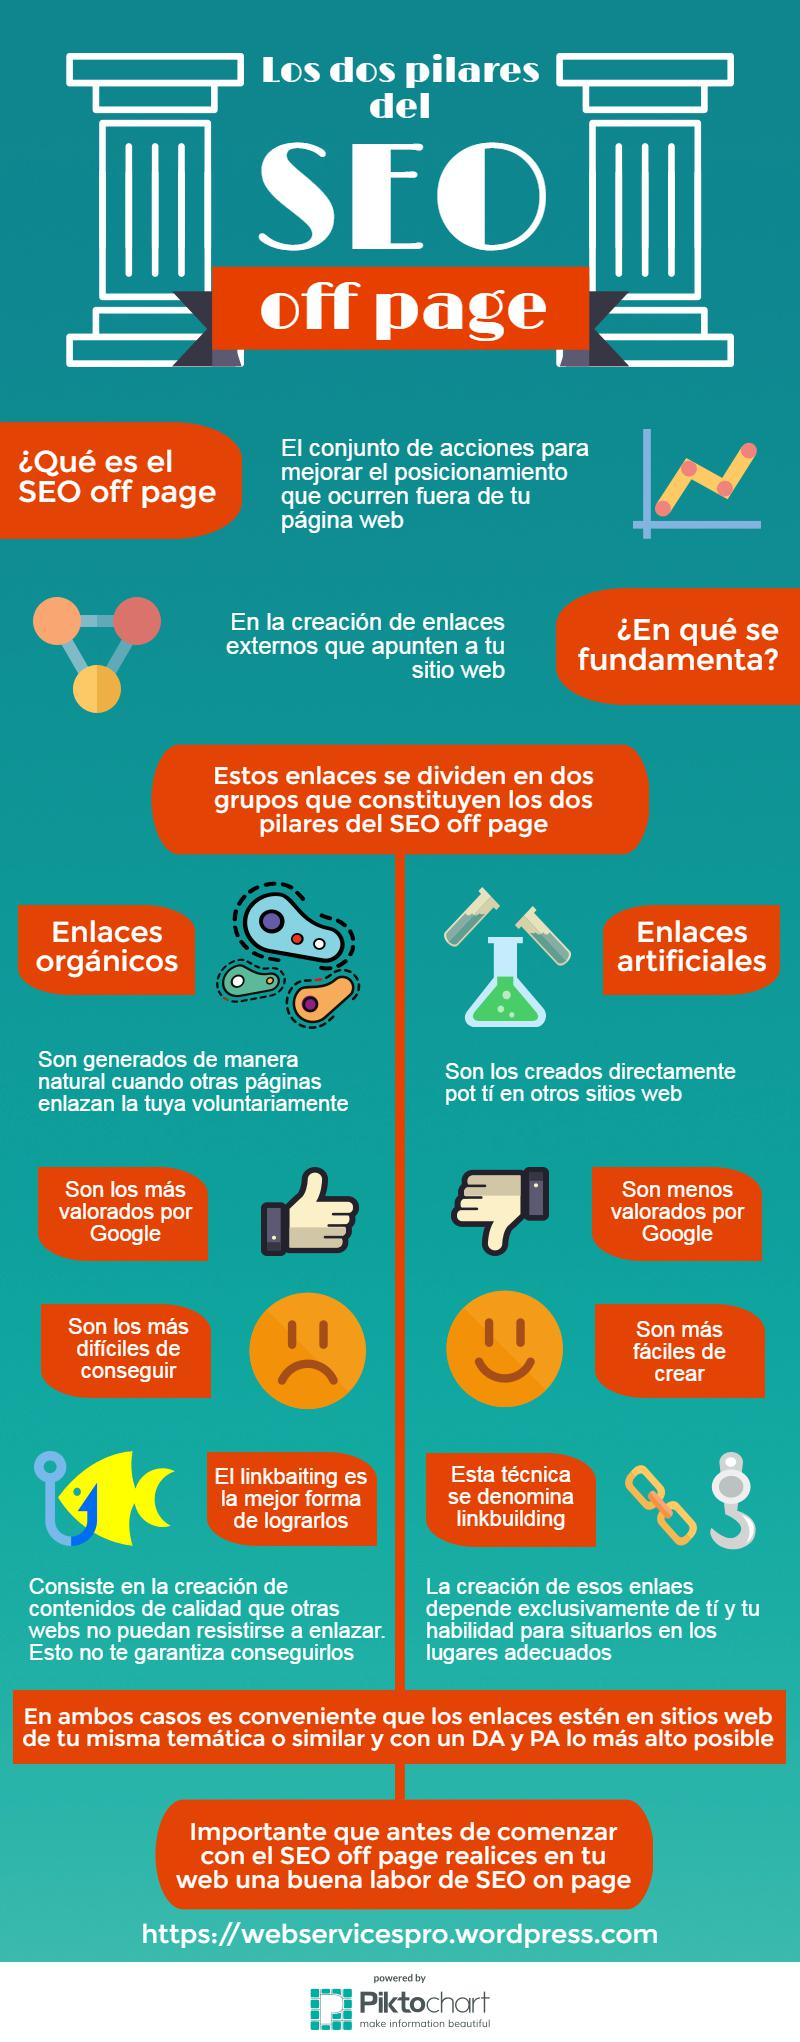 2 pilares del SEO Off Page #infografia #infographic #seo